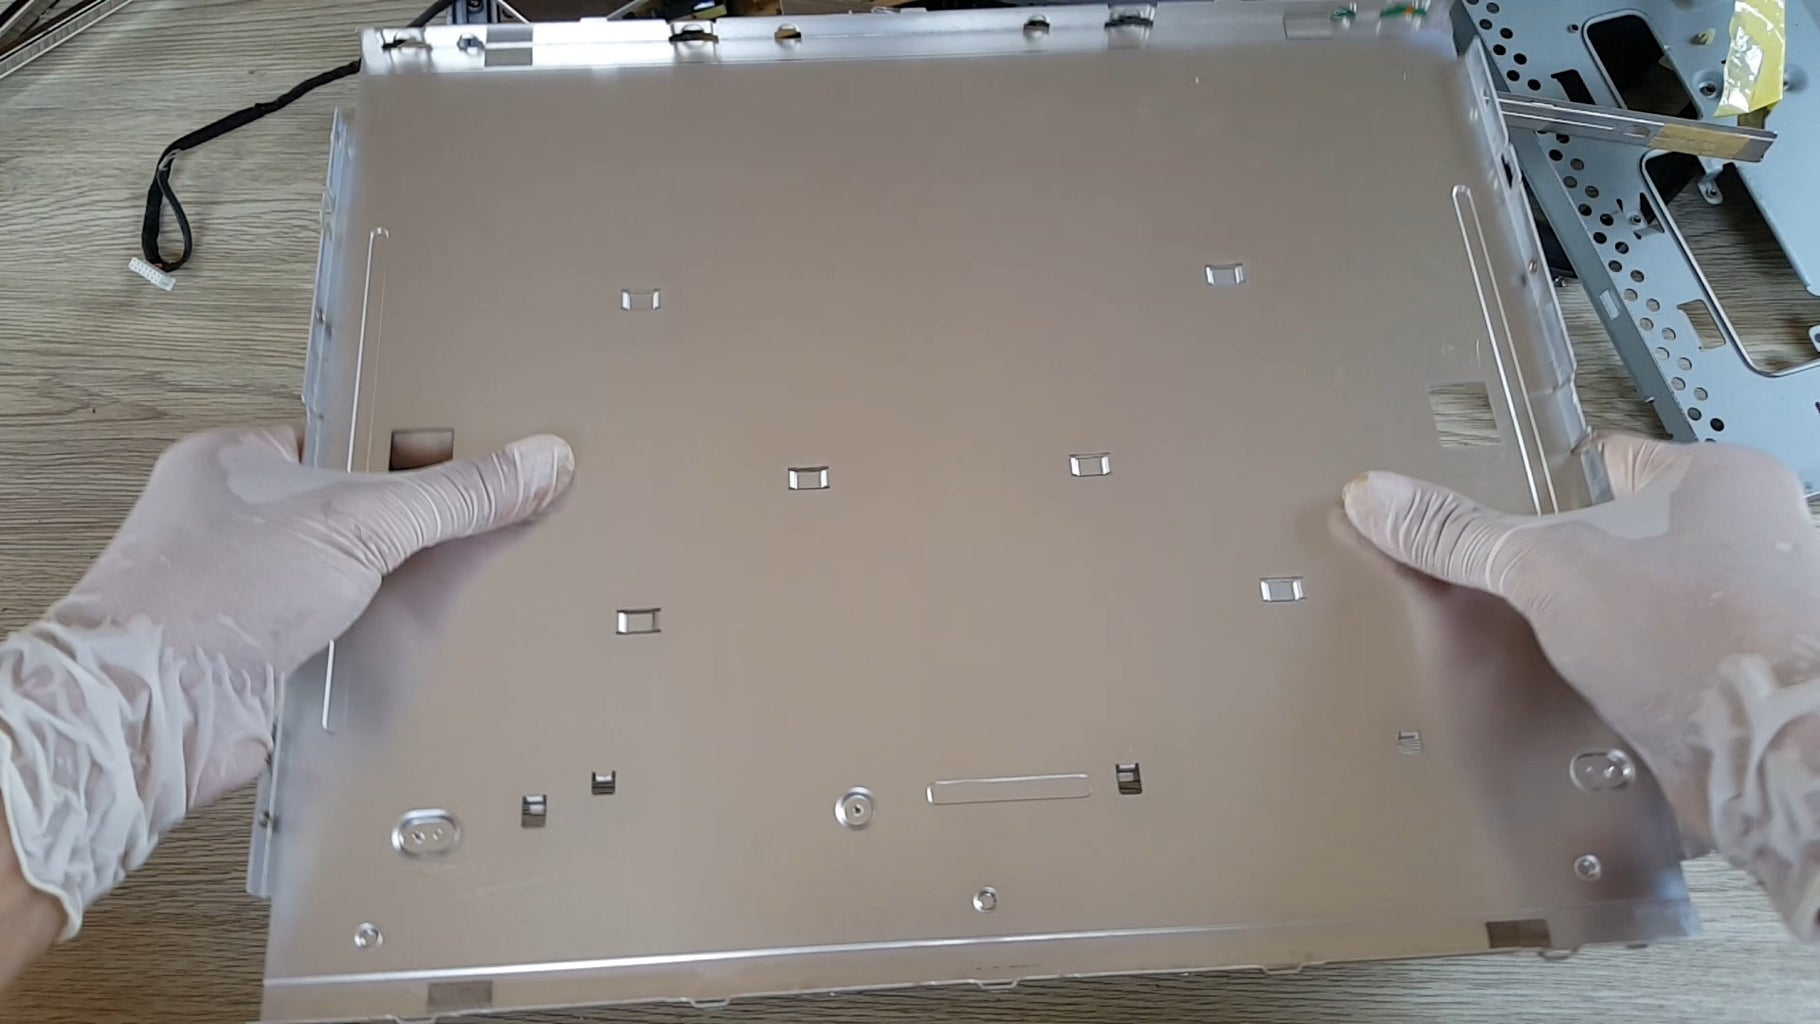 This Aluminum Plate Will Mount the Leds Up